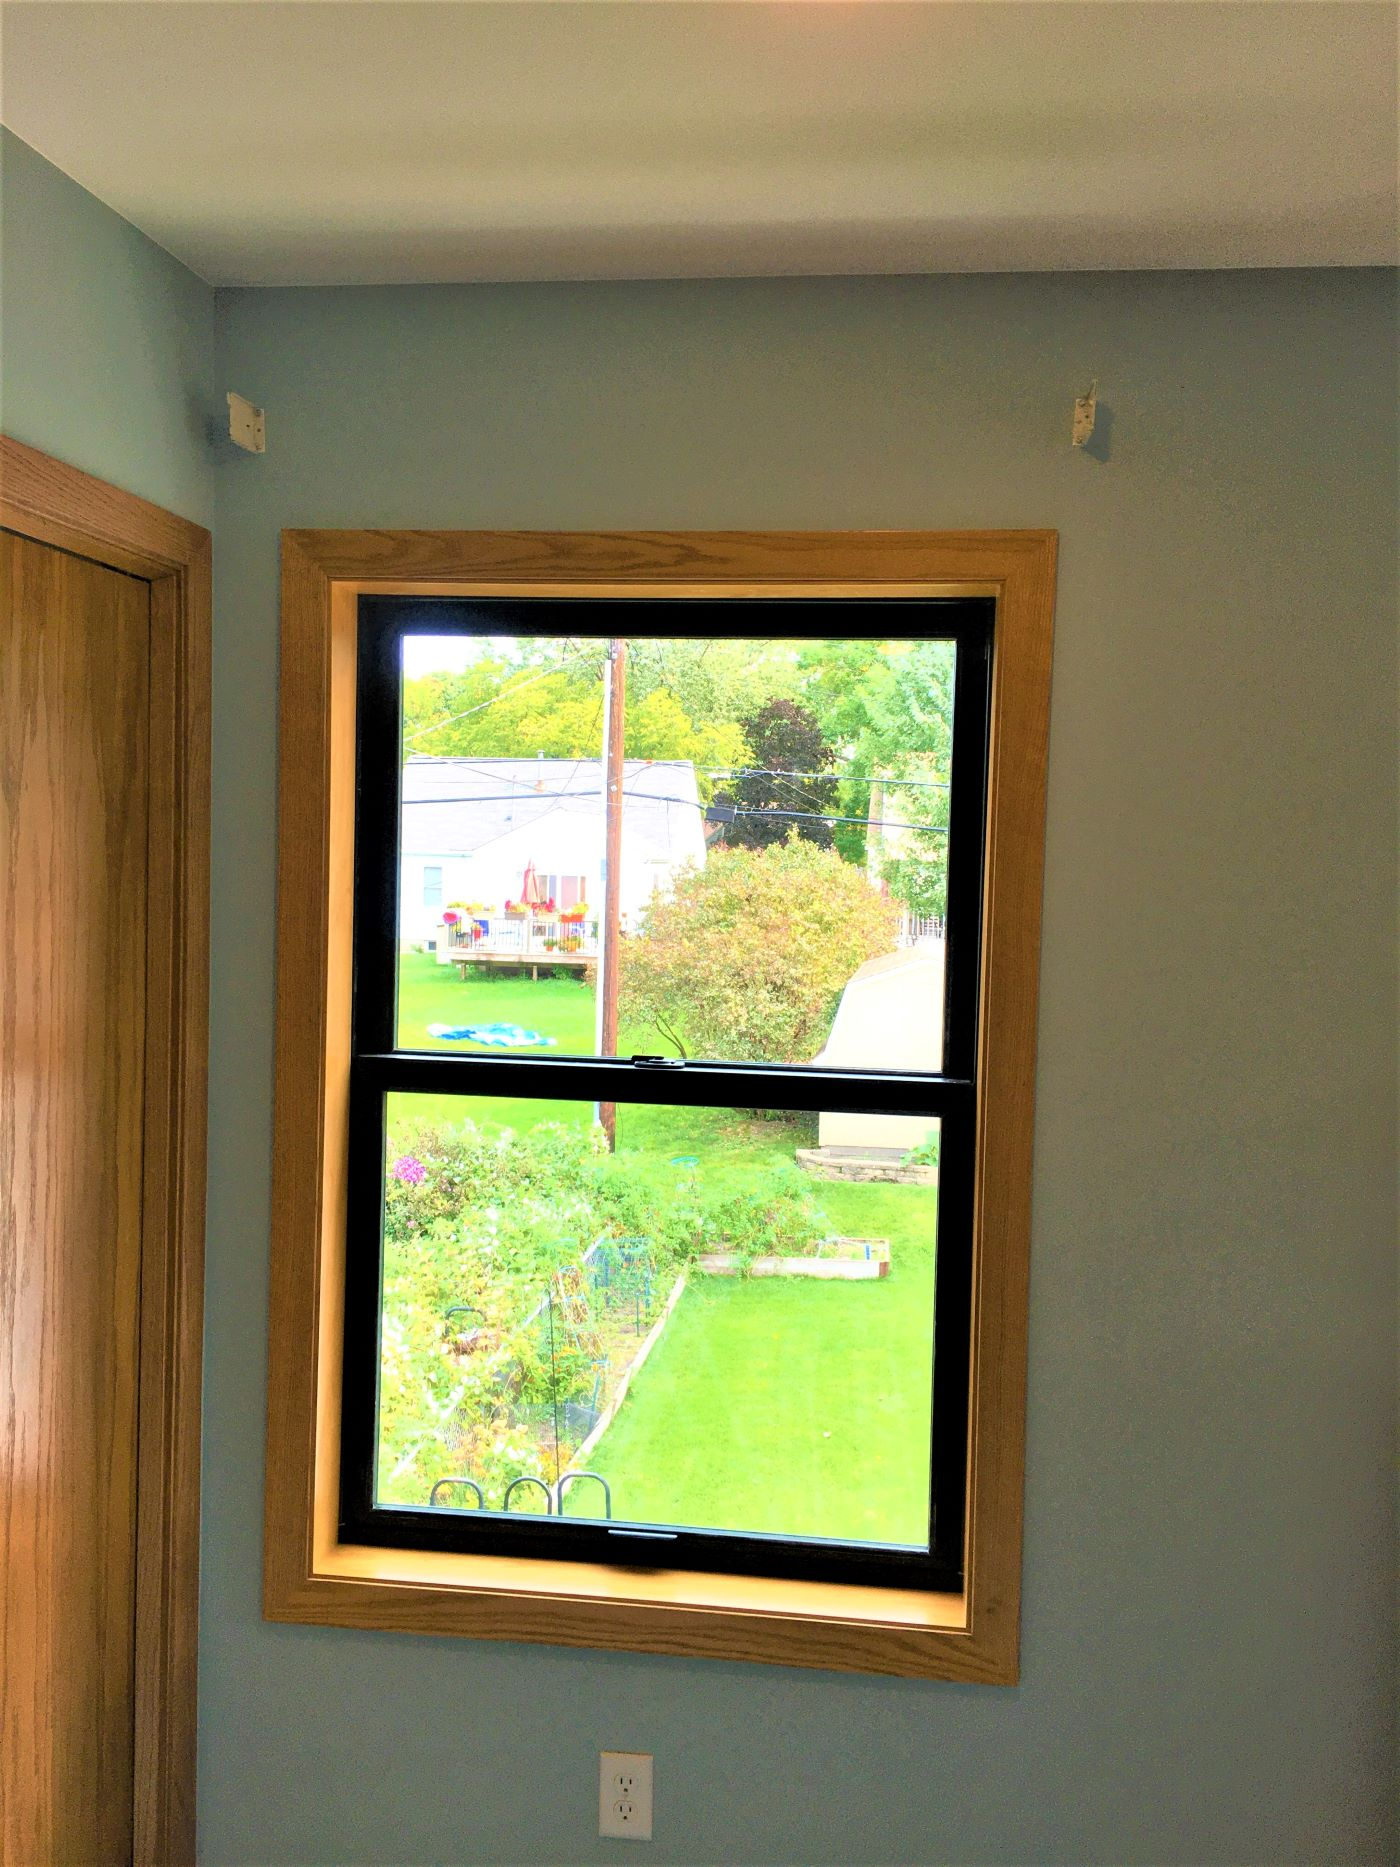 marvin double hung